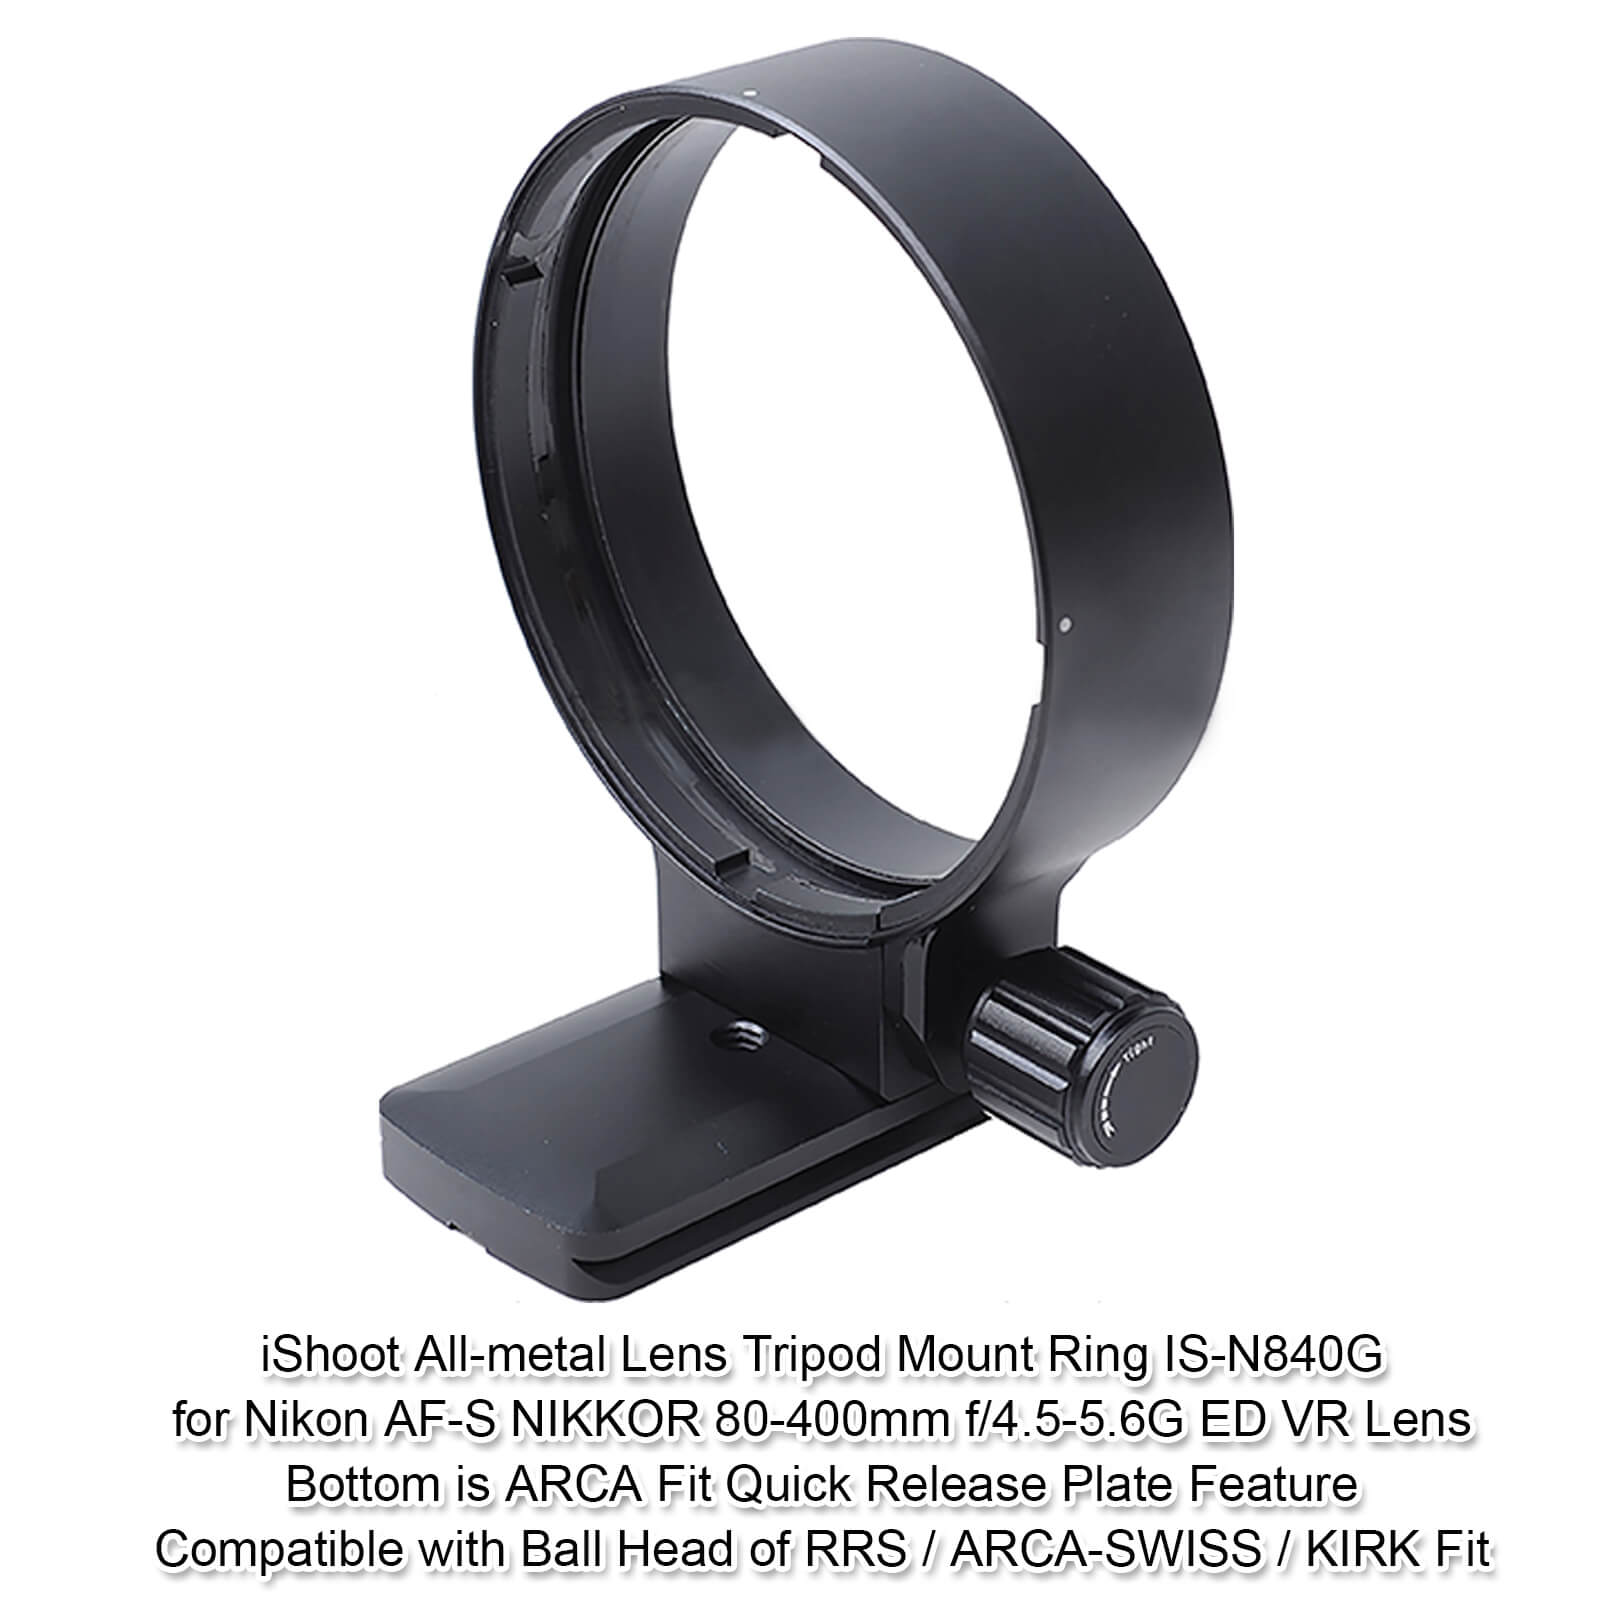 Built-in ARCA-Swiss Fit Quick Release Plate for Arca Type Tripod Ball Head iShoot CNC Machined Lens Support Collar Tripod Mount Ring Compatible with Nikon AF-S NIKKOR 28-300mm f//3.5-5.6G ED VR Lens